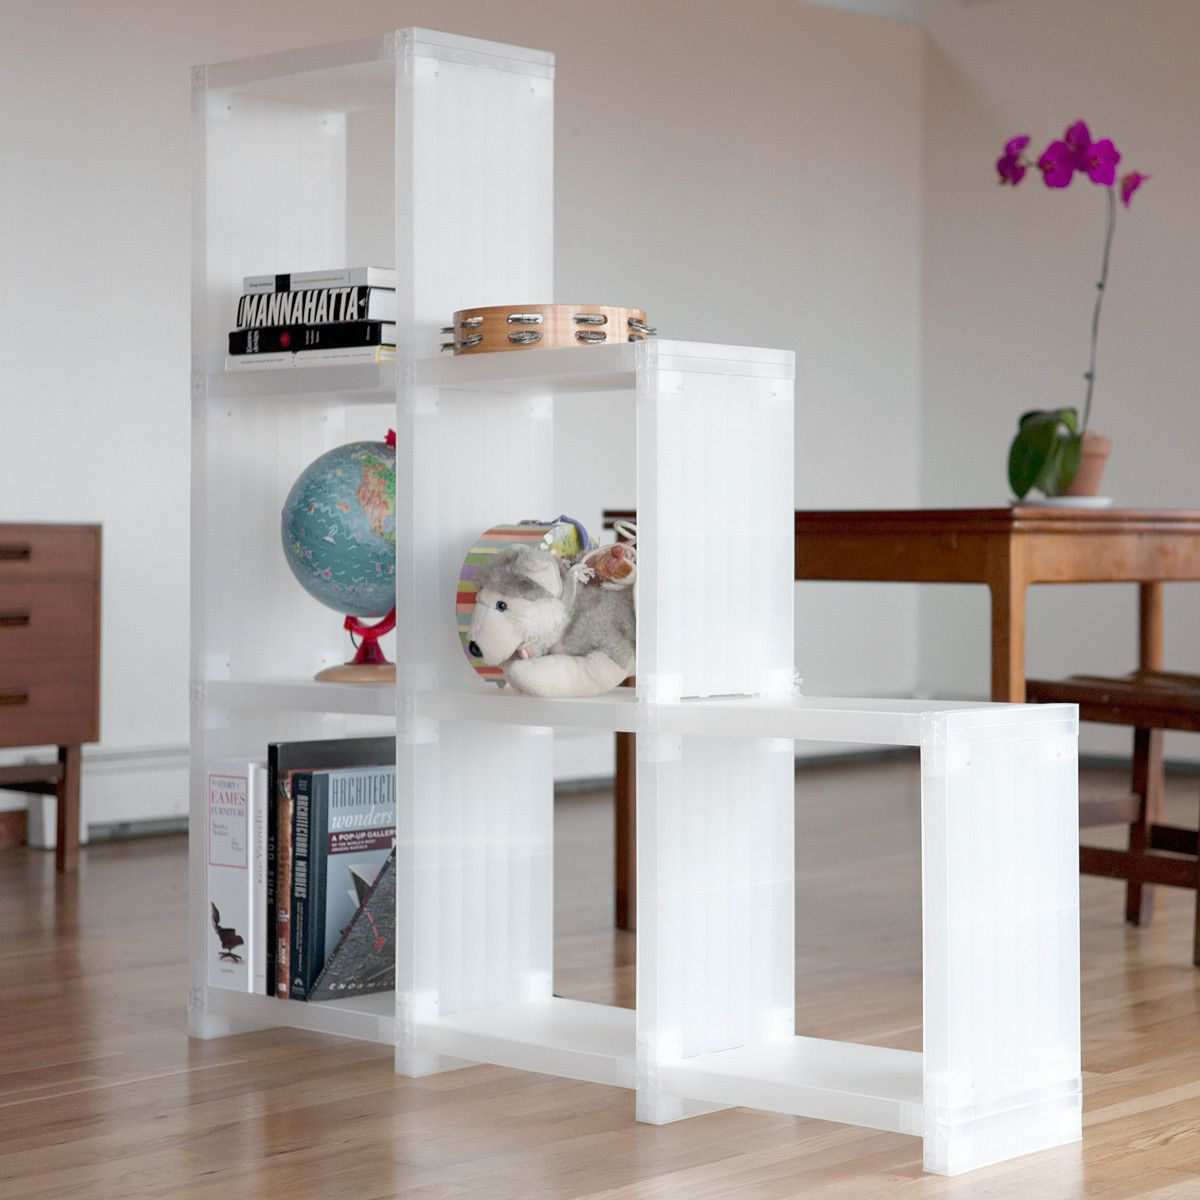 Elegant Cubitec Shelving System Clear By Doron Lachisch Awesome Ideas